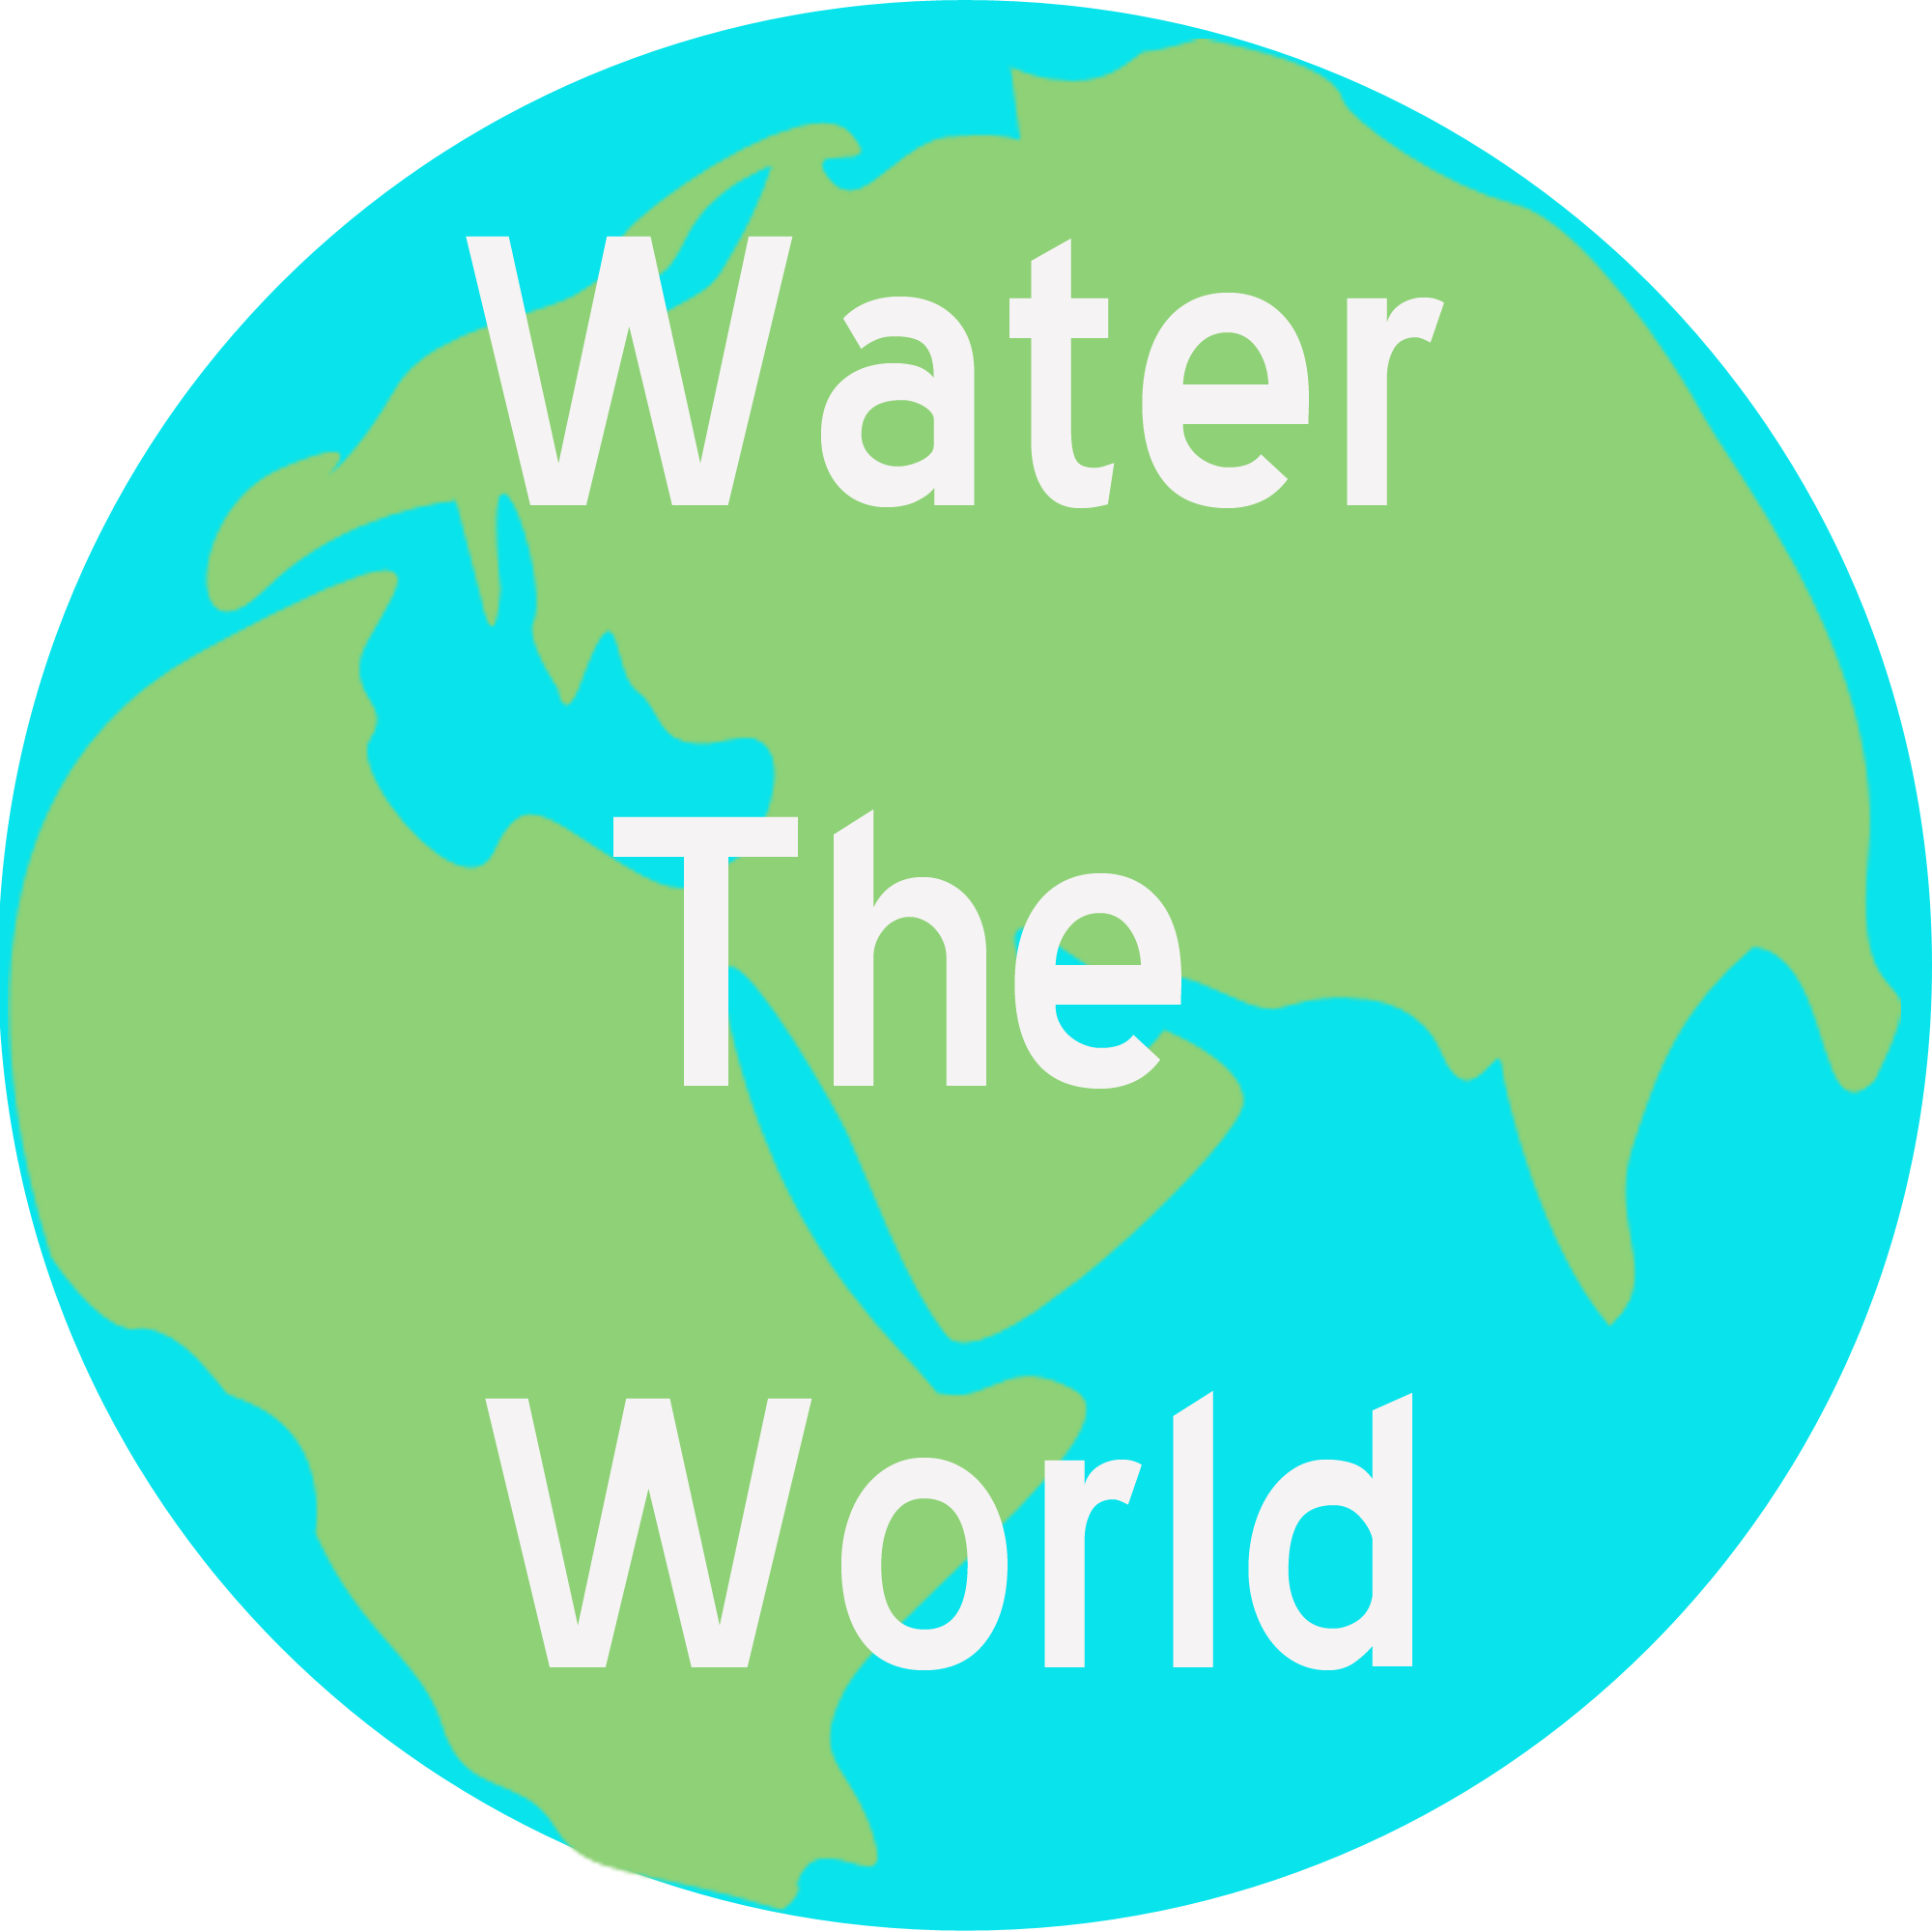 Water the World